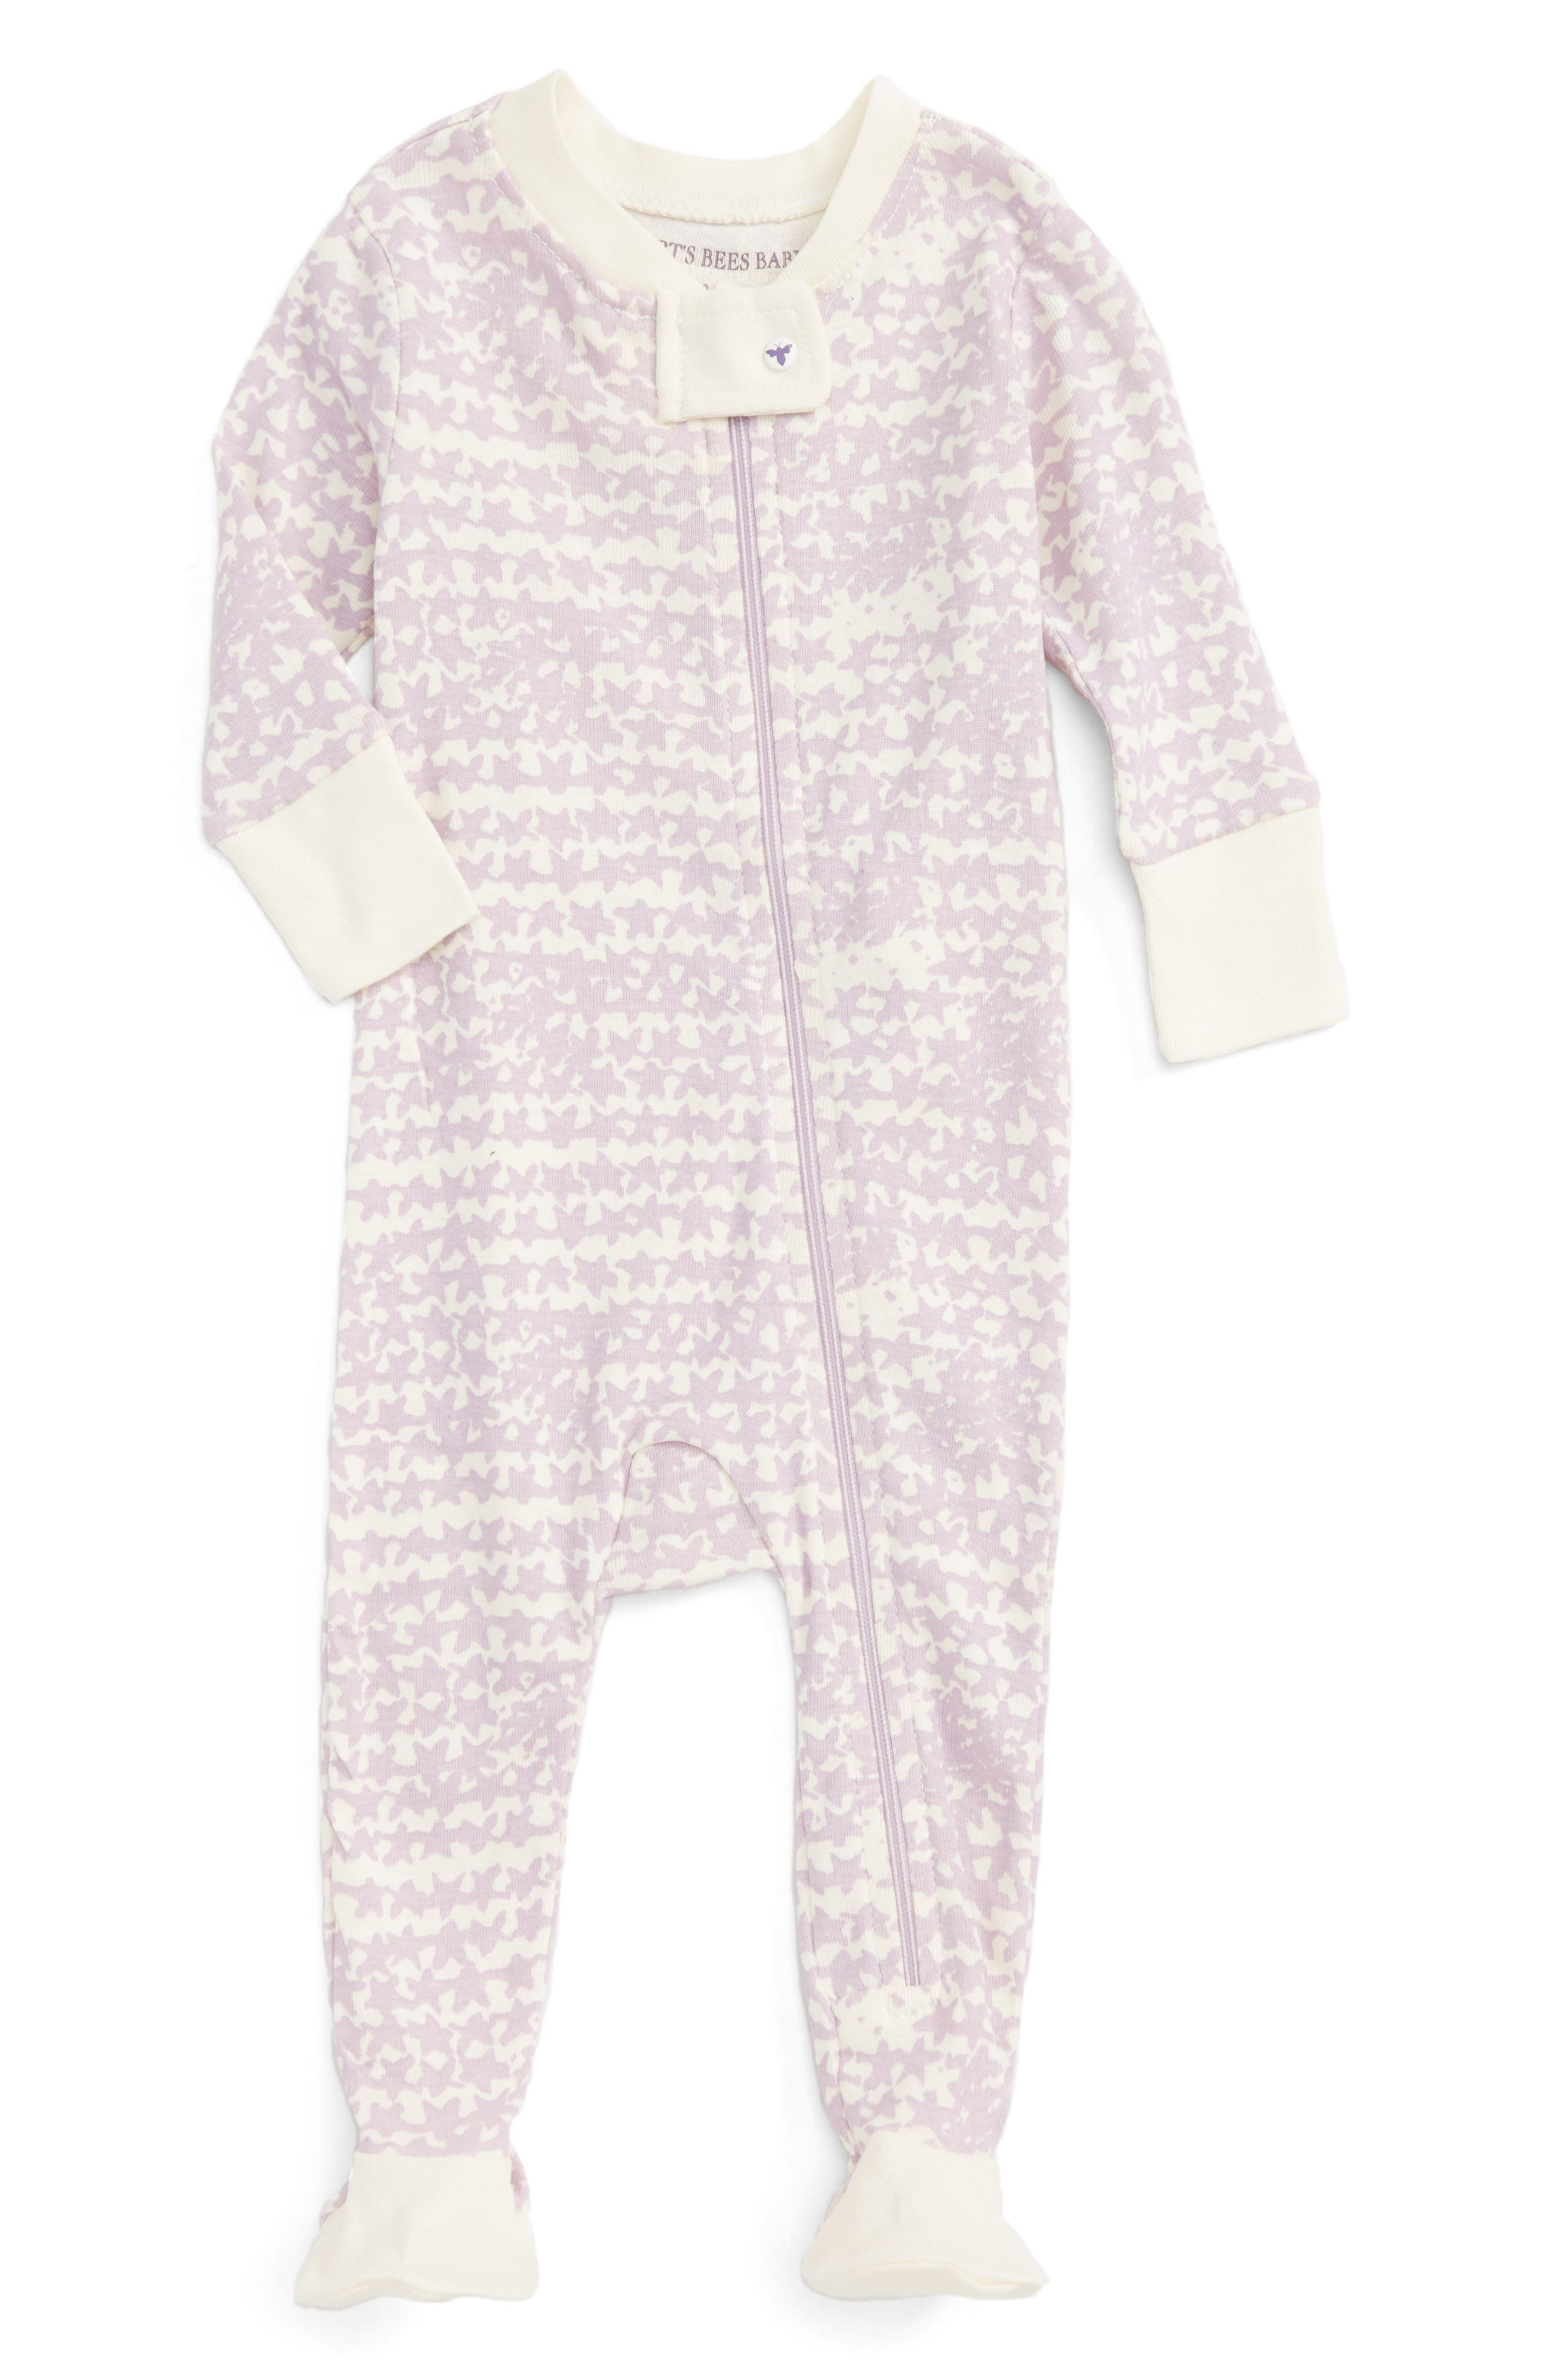 Main Image - Burt's Bees Baby Clustered Star Fitted One-Piece Footed Pajamas (Baby Girls)